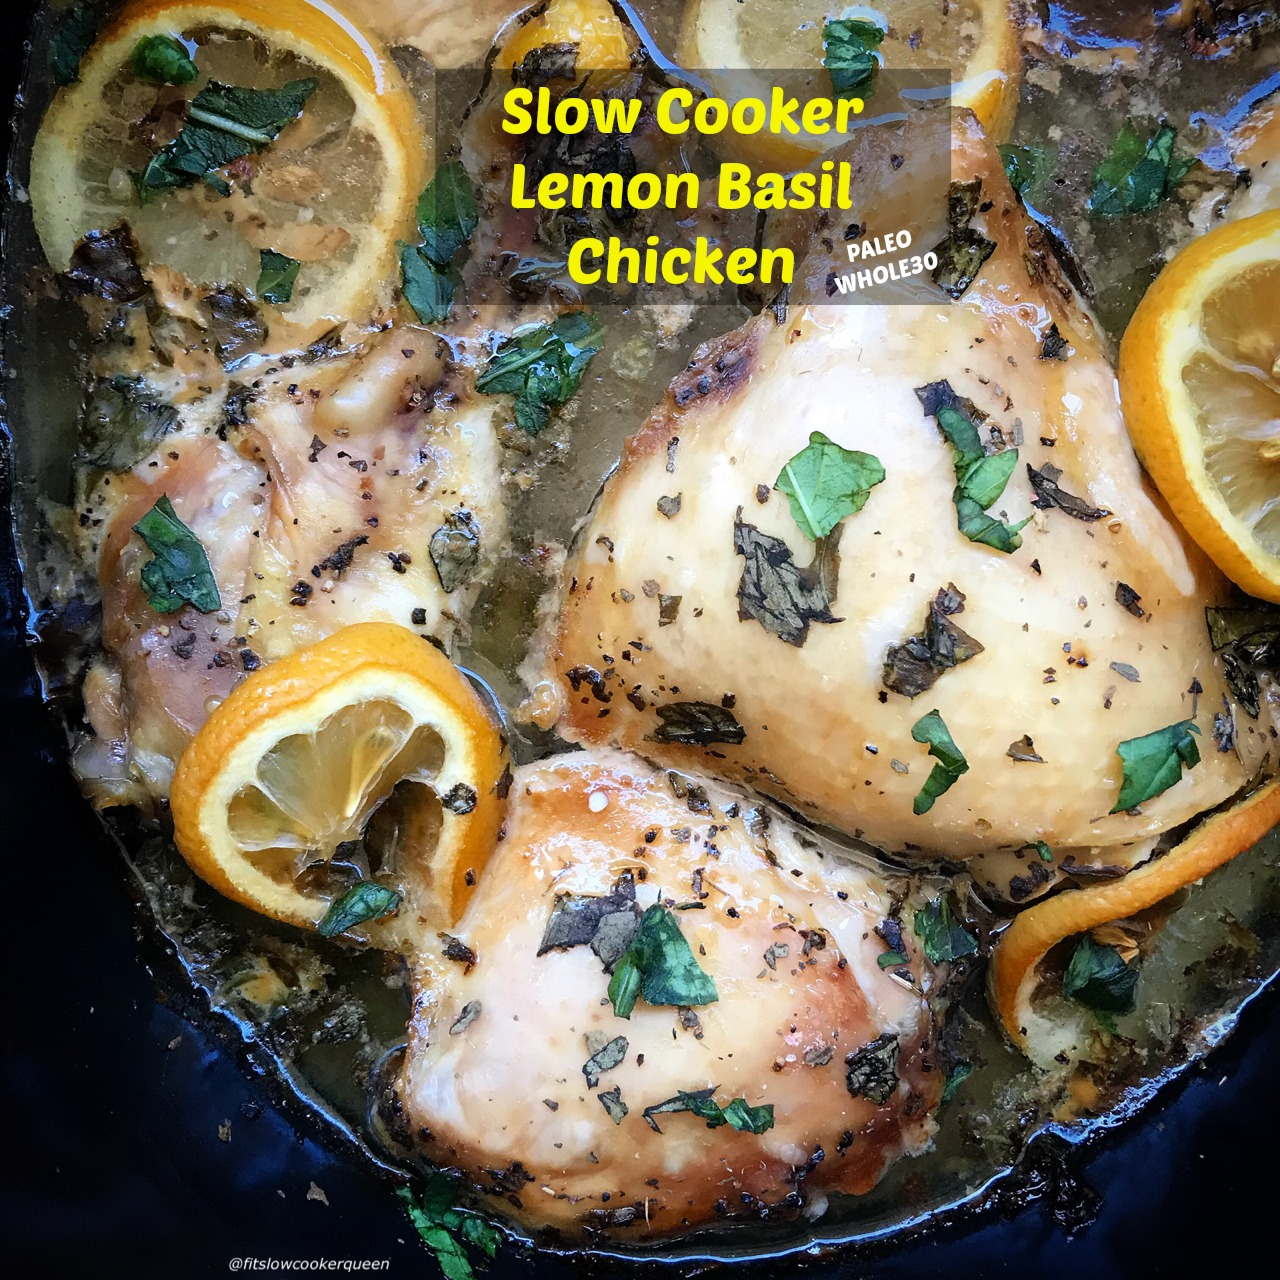 Lemon and basil are a great combination, perfect for a chicken slow cooker recipe. Using a simple homemade sauce of lemon juice, basil and a few other ingredients, this healthy recipe is both paleo and whole30.